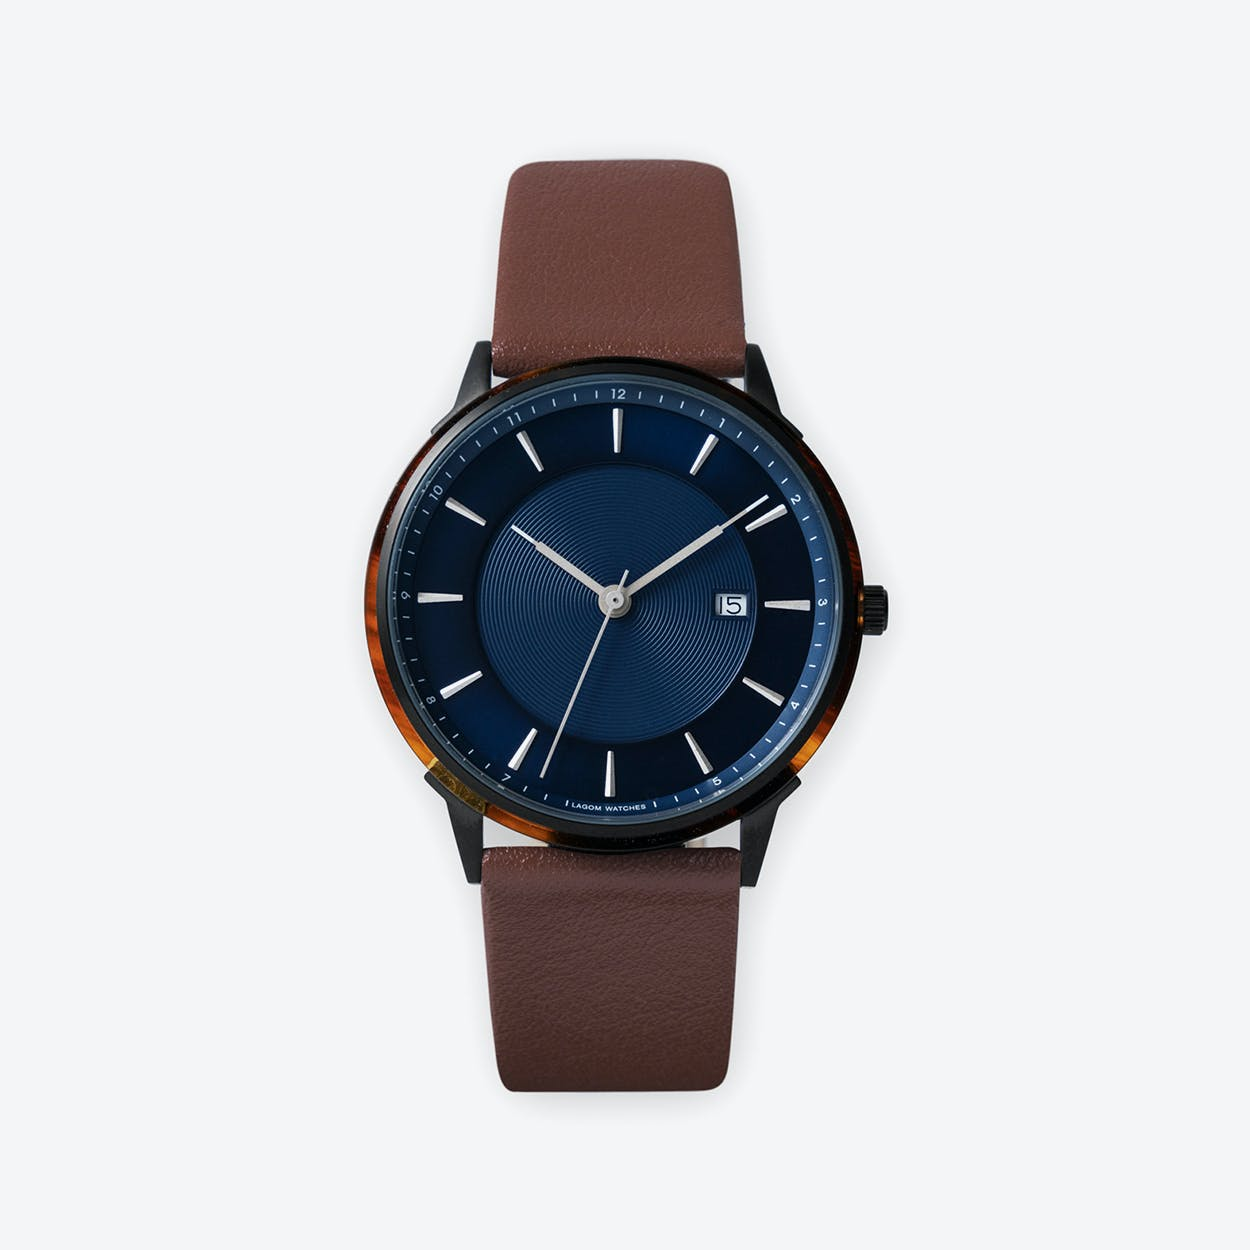 BÖRJA - Black Watch in Dark Blue Face & Brown Leather Strap